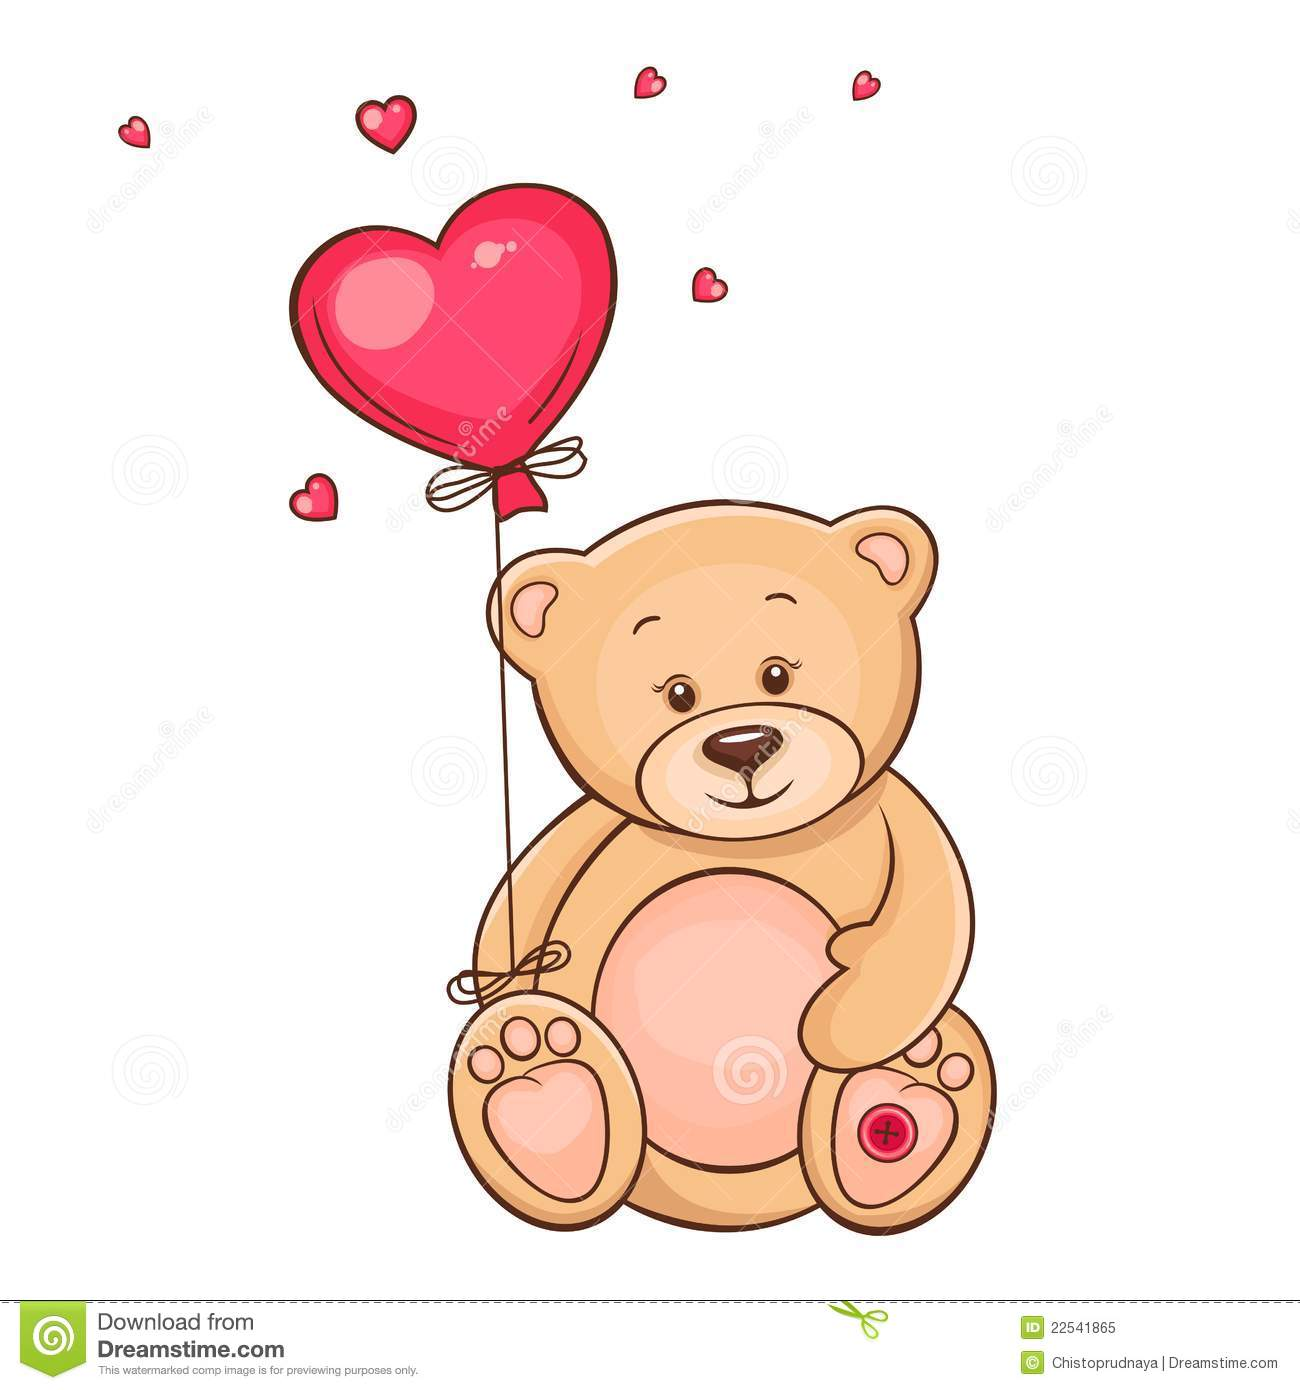 How To Draw A Teddy Bear Holding A Rose  Photo#13